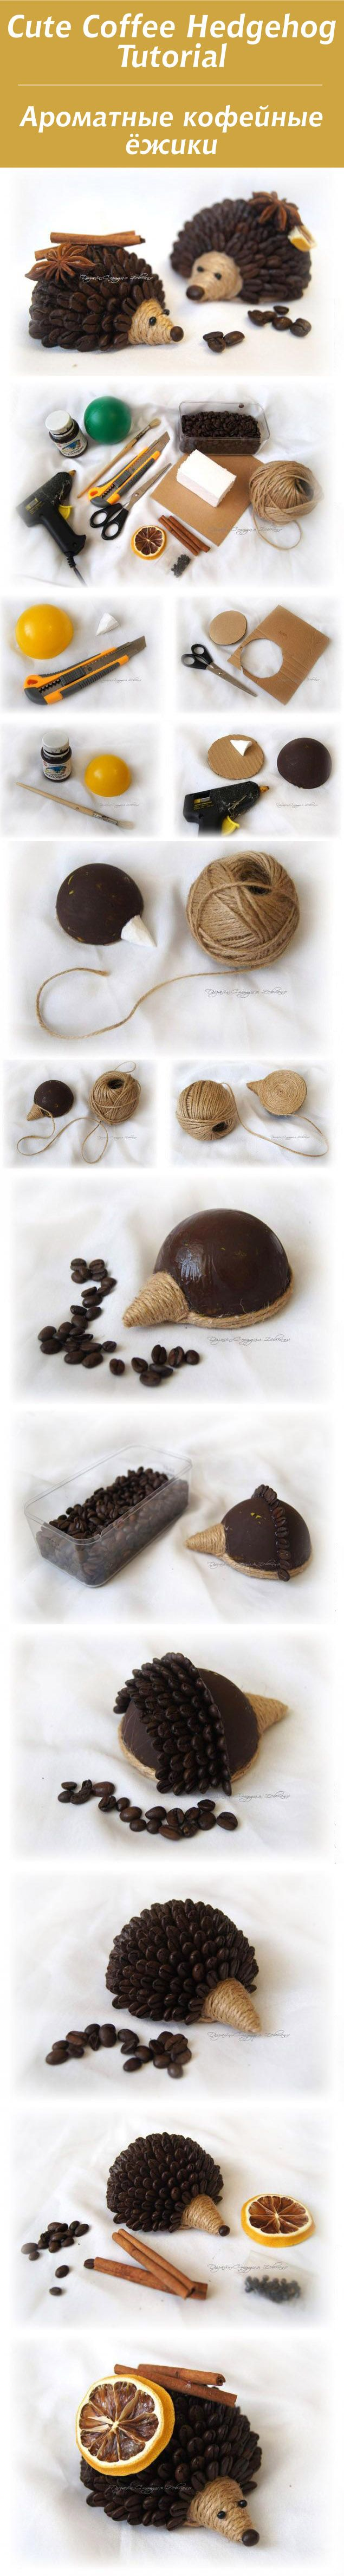 Ароматные кофейные ежики / Cute Coffee Hedgehog Tutorial  #coffeehedgehog #tutorial